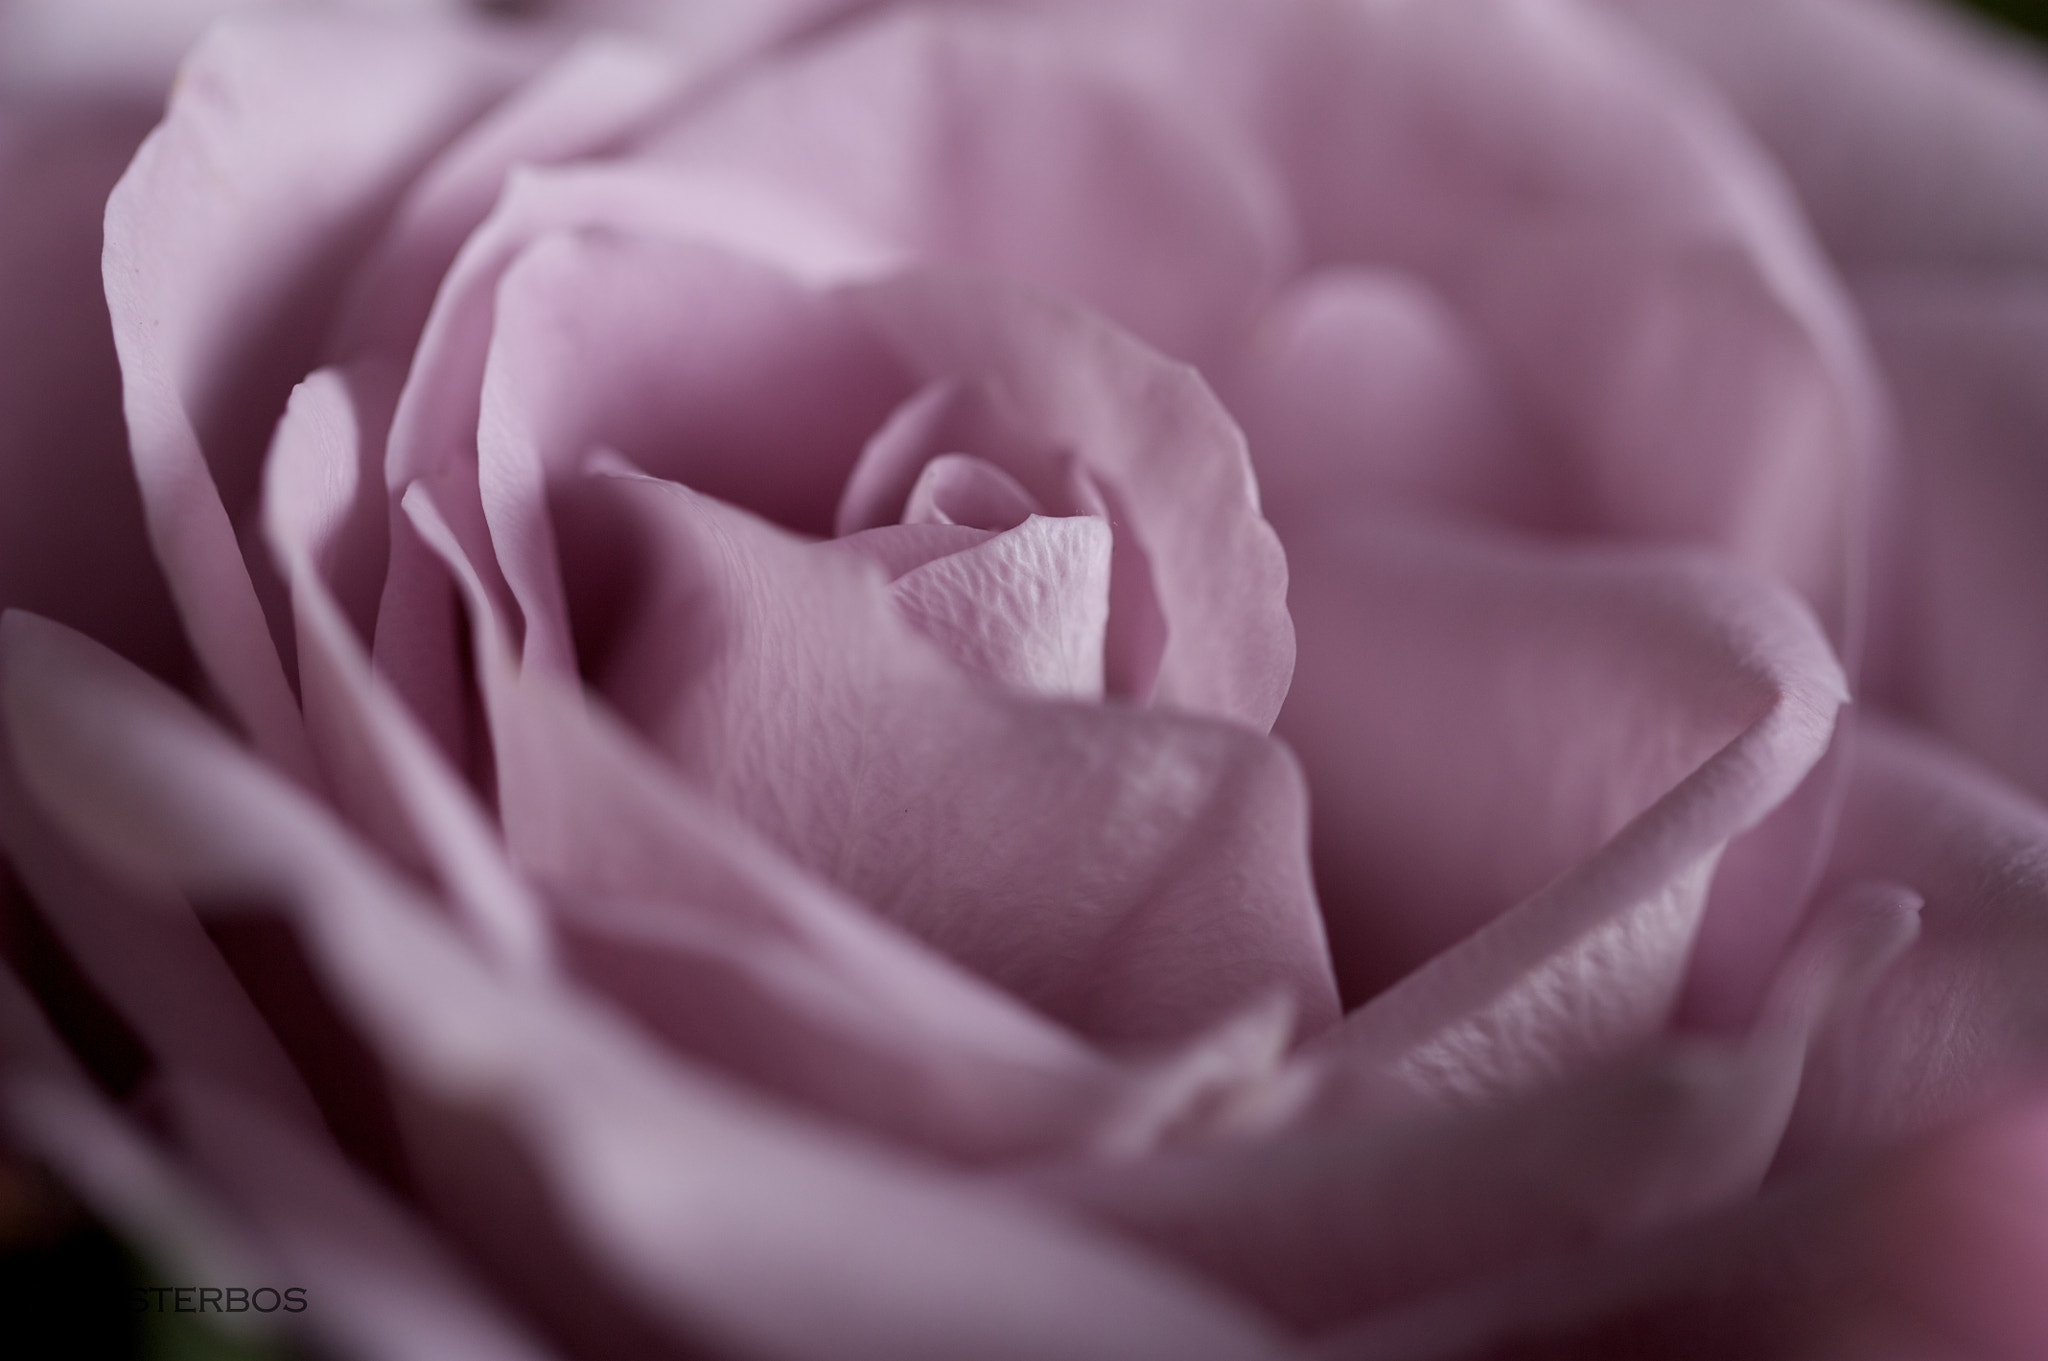 Photograph Rose by Familie Pinksterbos on 500px